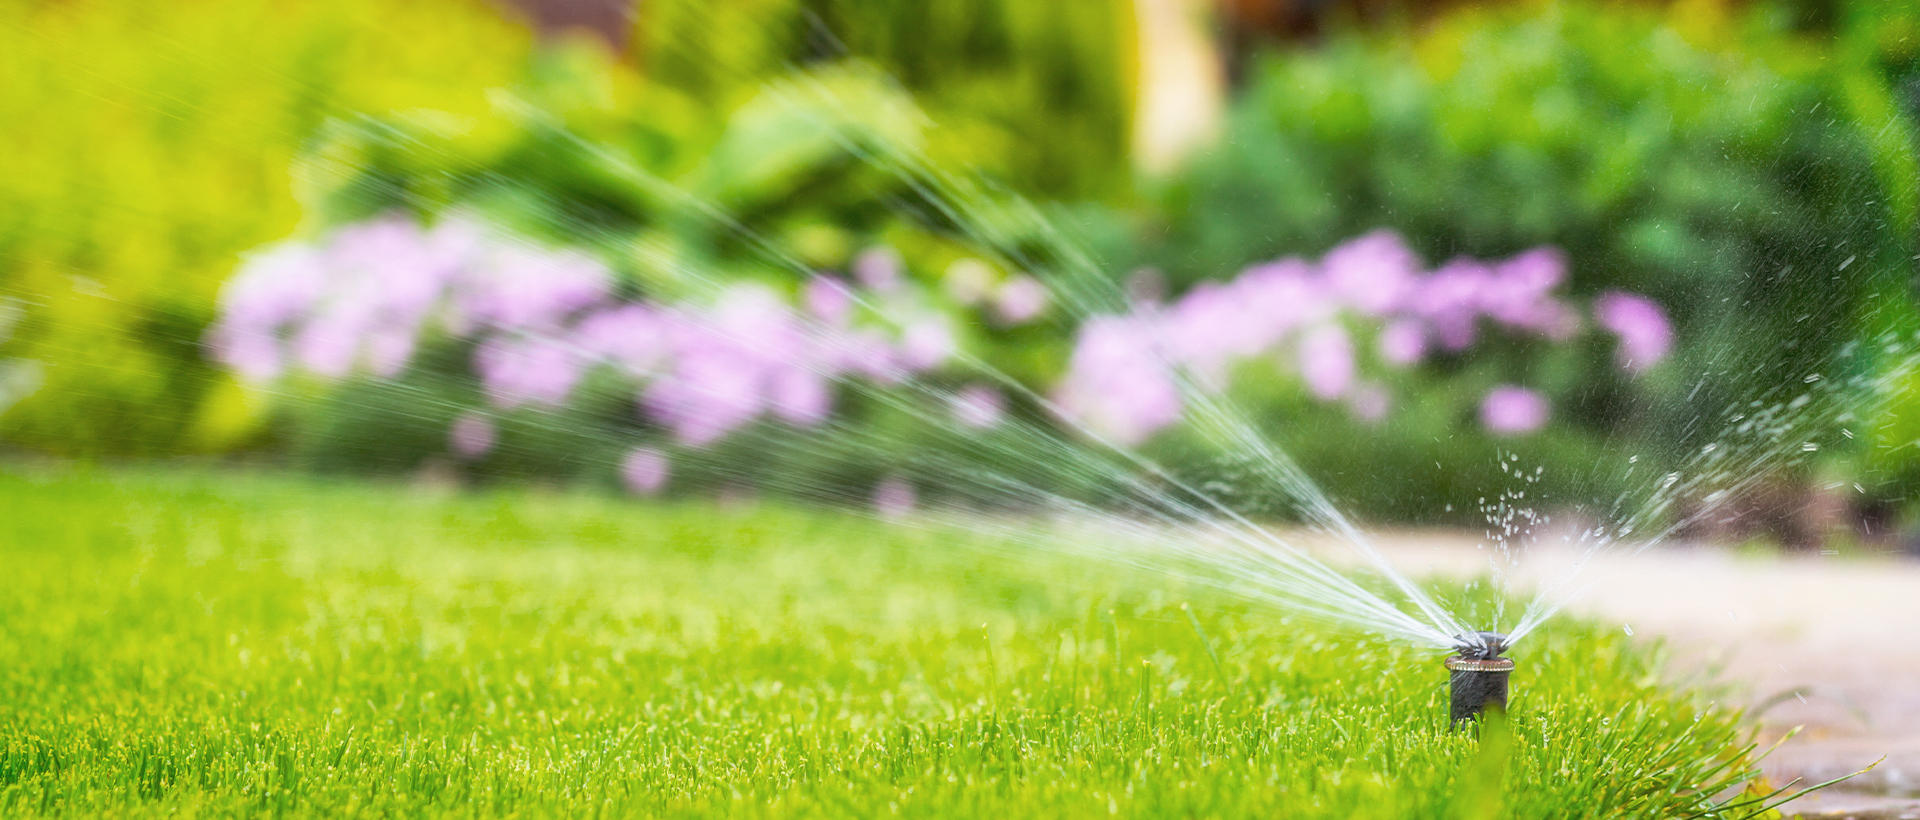 A Sprinkler Watering a Homeowner's Yard